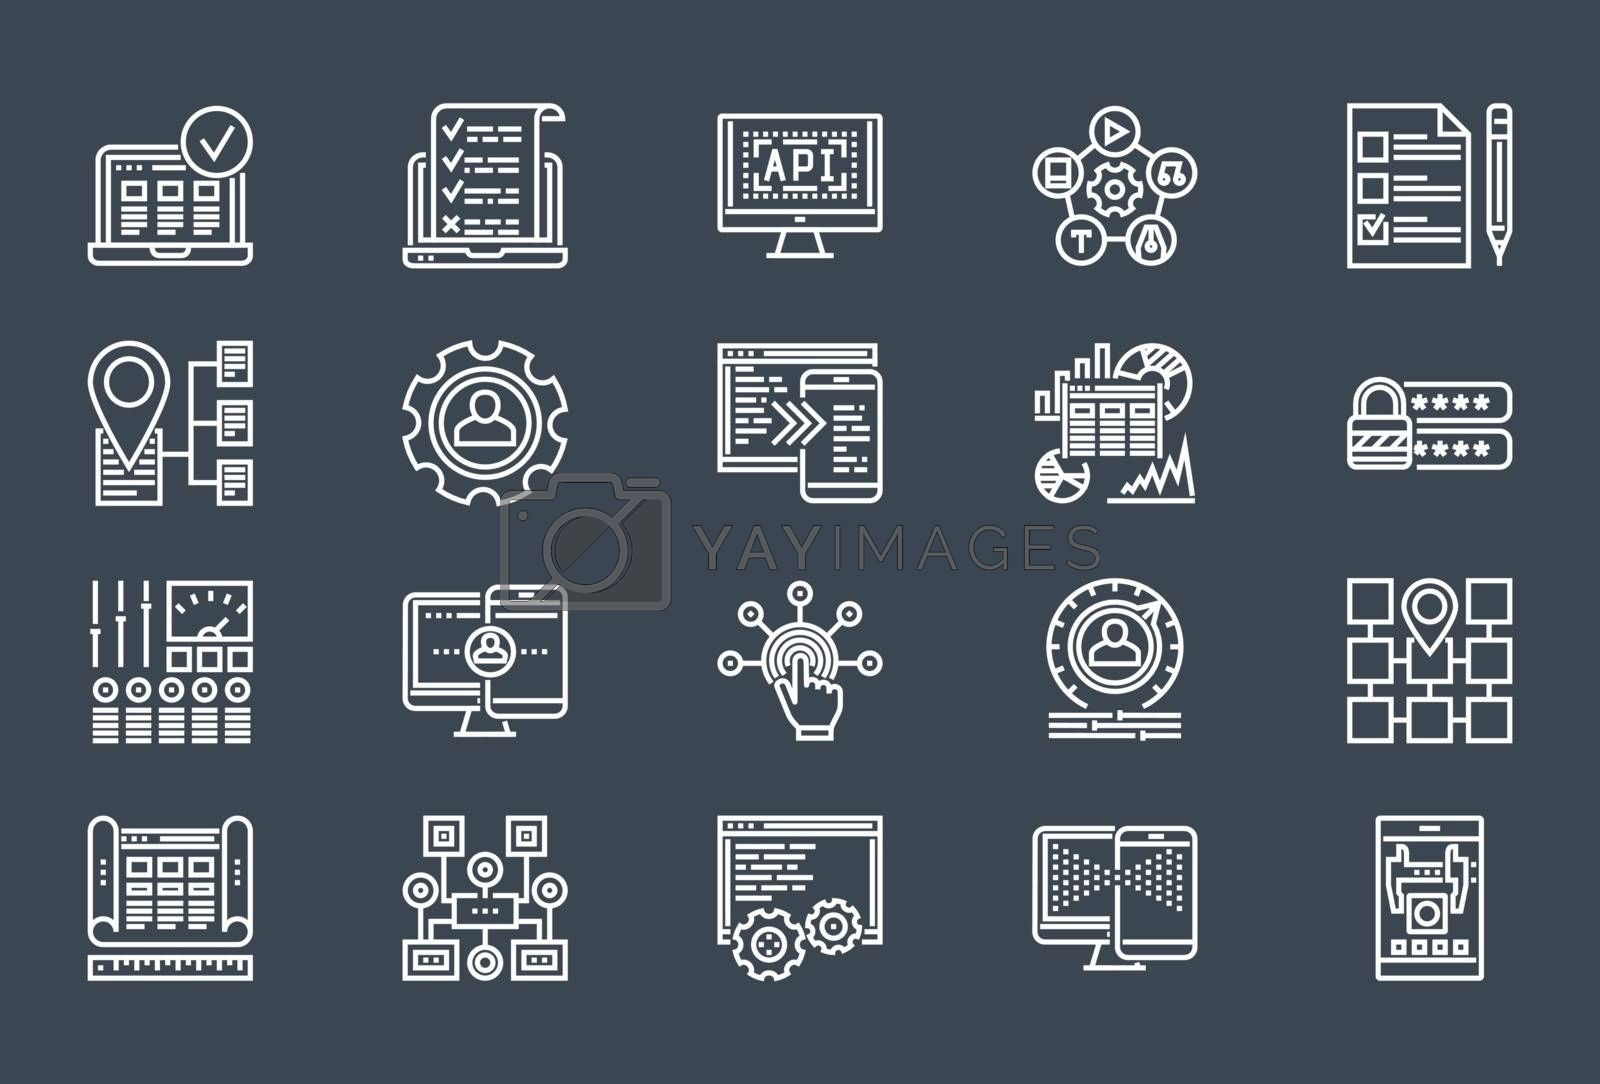 Web Development Thin Line Related Icons Set of Web Design and Website Customization on Black Background. Simple Mono Linear Pictogram Stroke Vector Logo Concept. Editable Stroke. 48x48 Pixel Perfect.